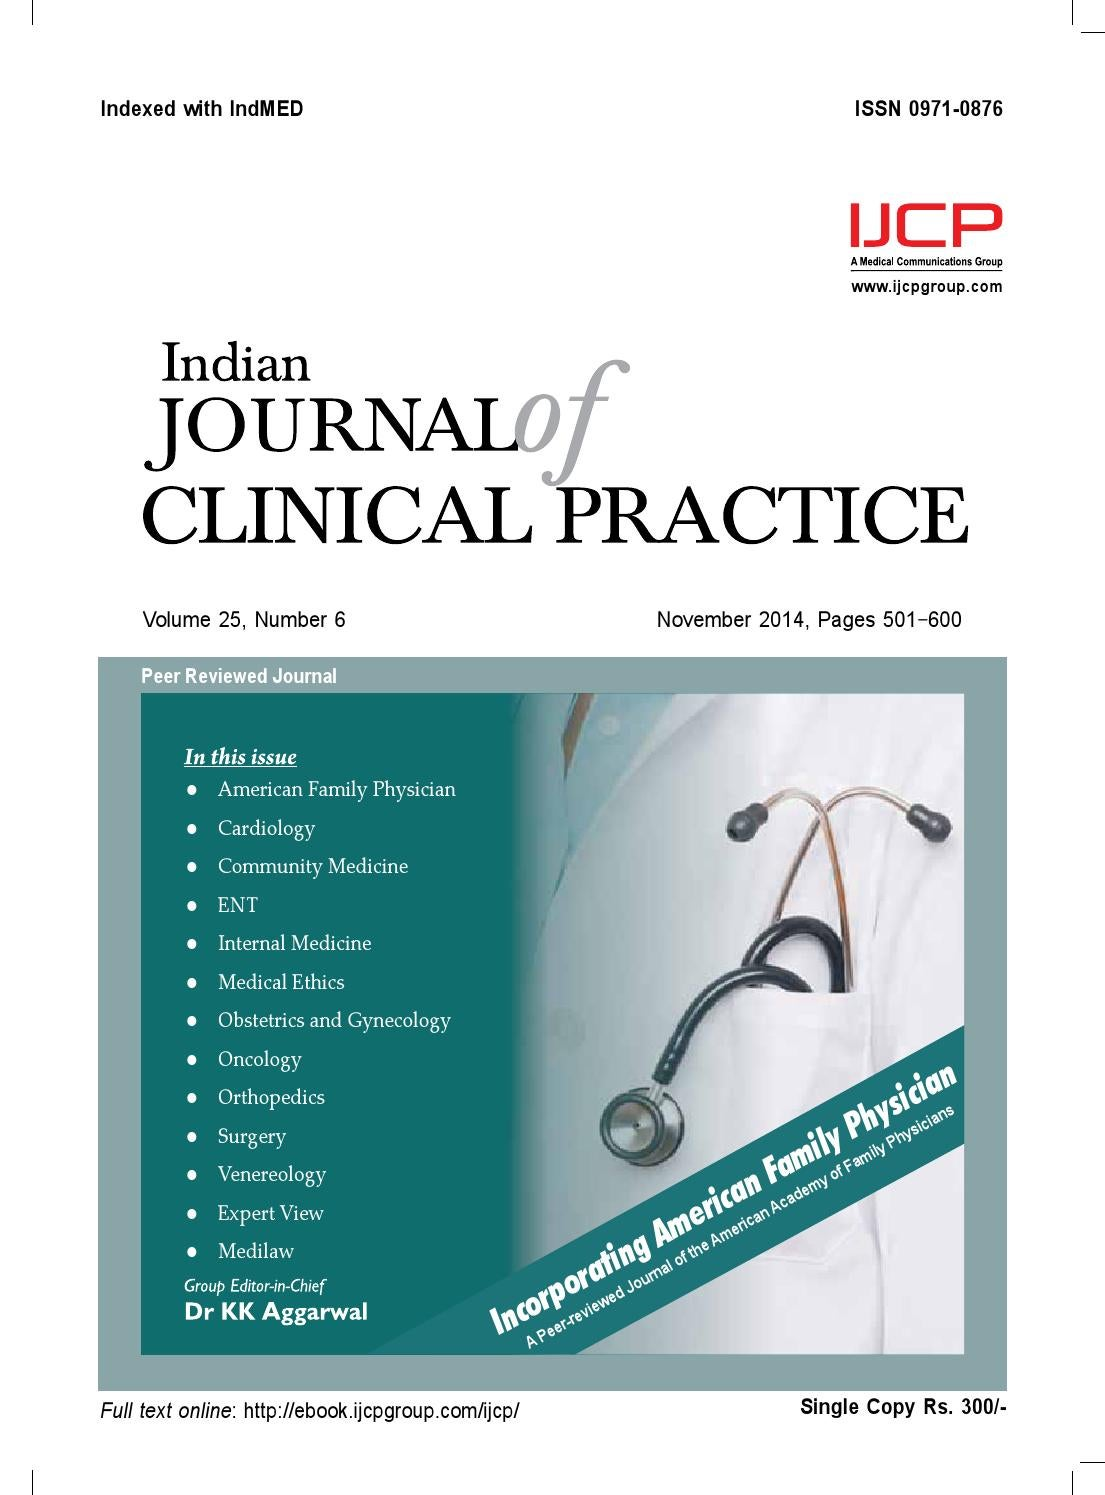 Bob long vis manual ebook page 233 array indian journal of clinical practice november 2014 by ijcp issuu rh issuu fandeluxe Image collections